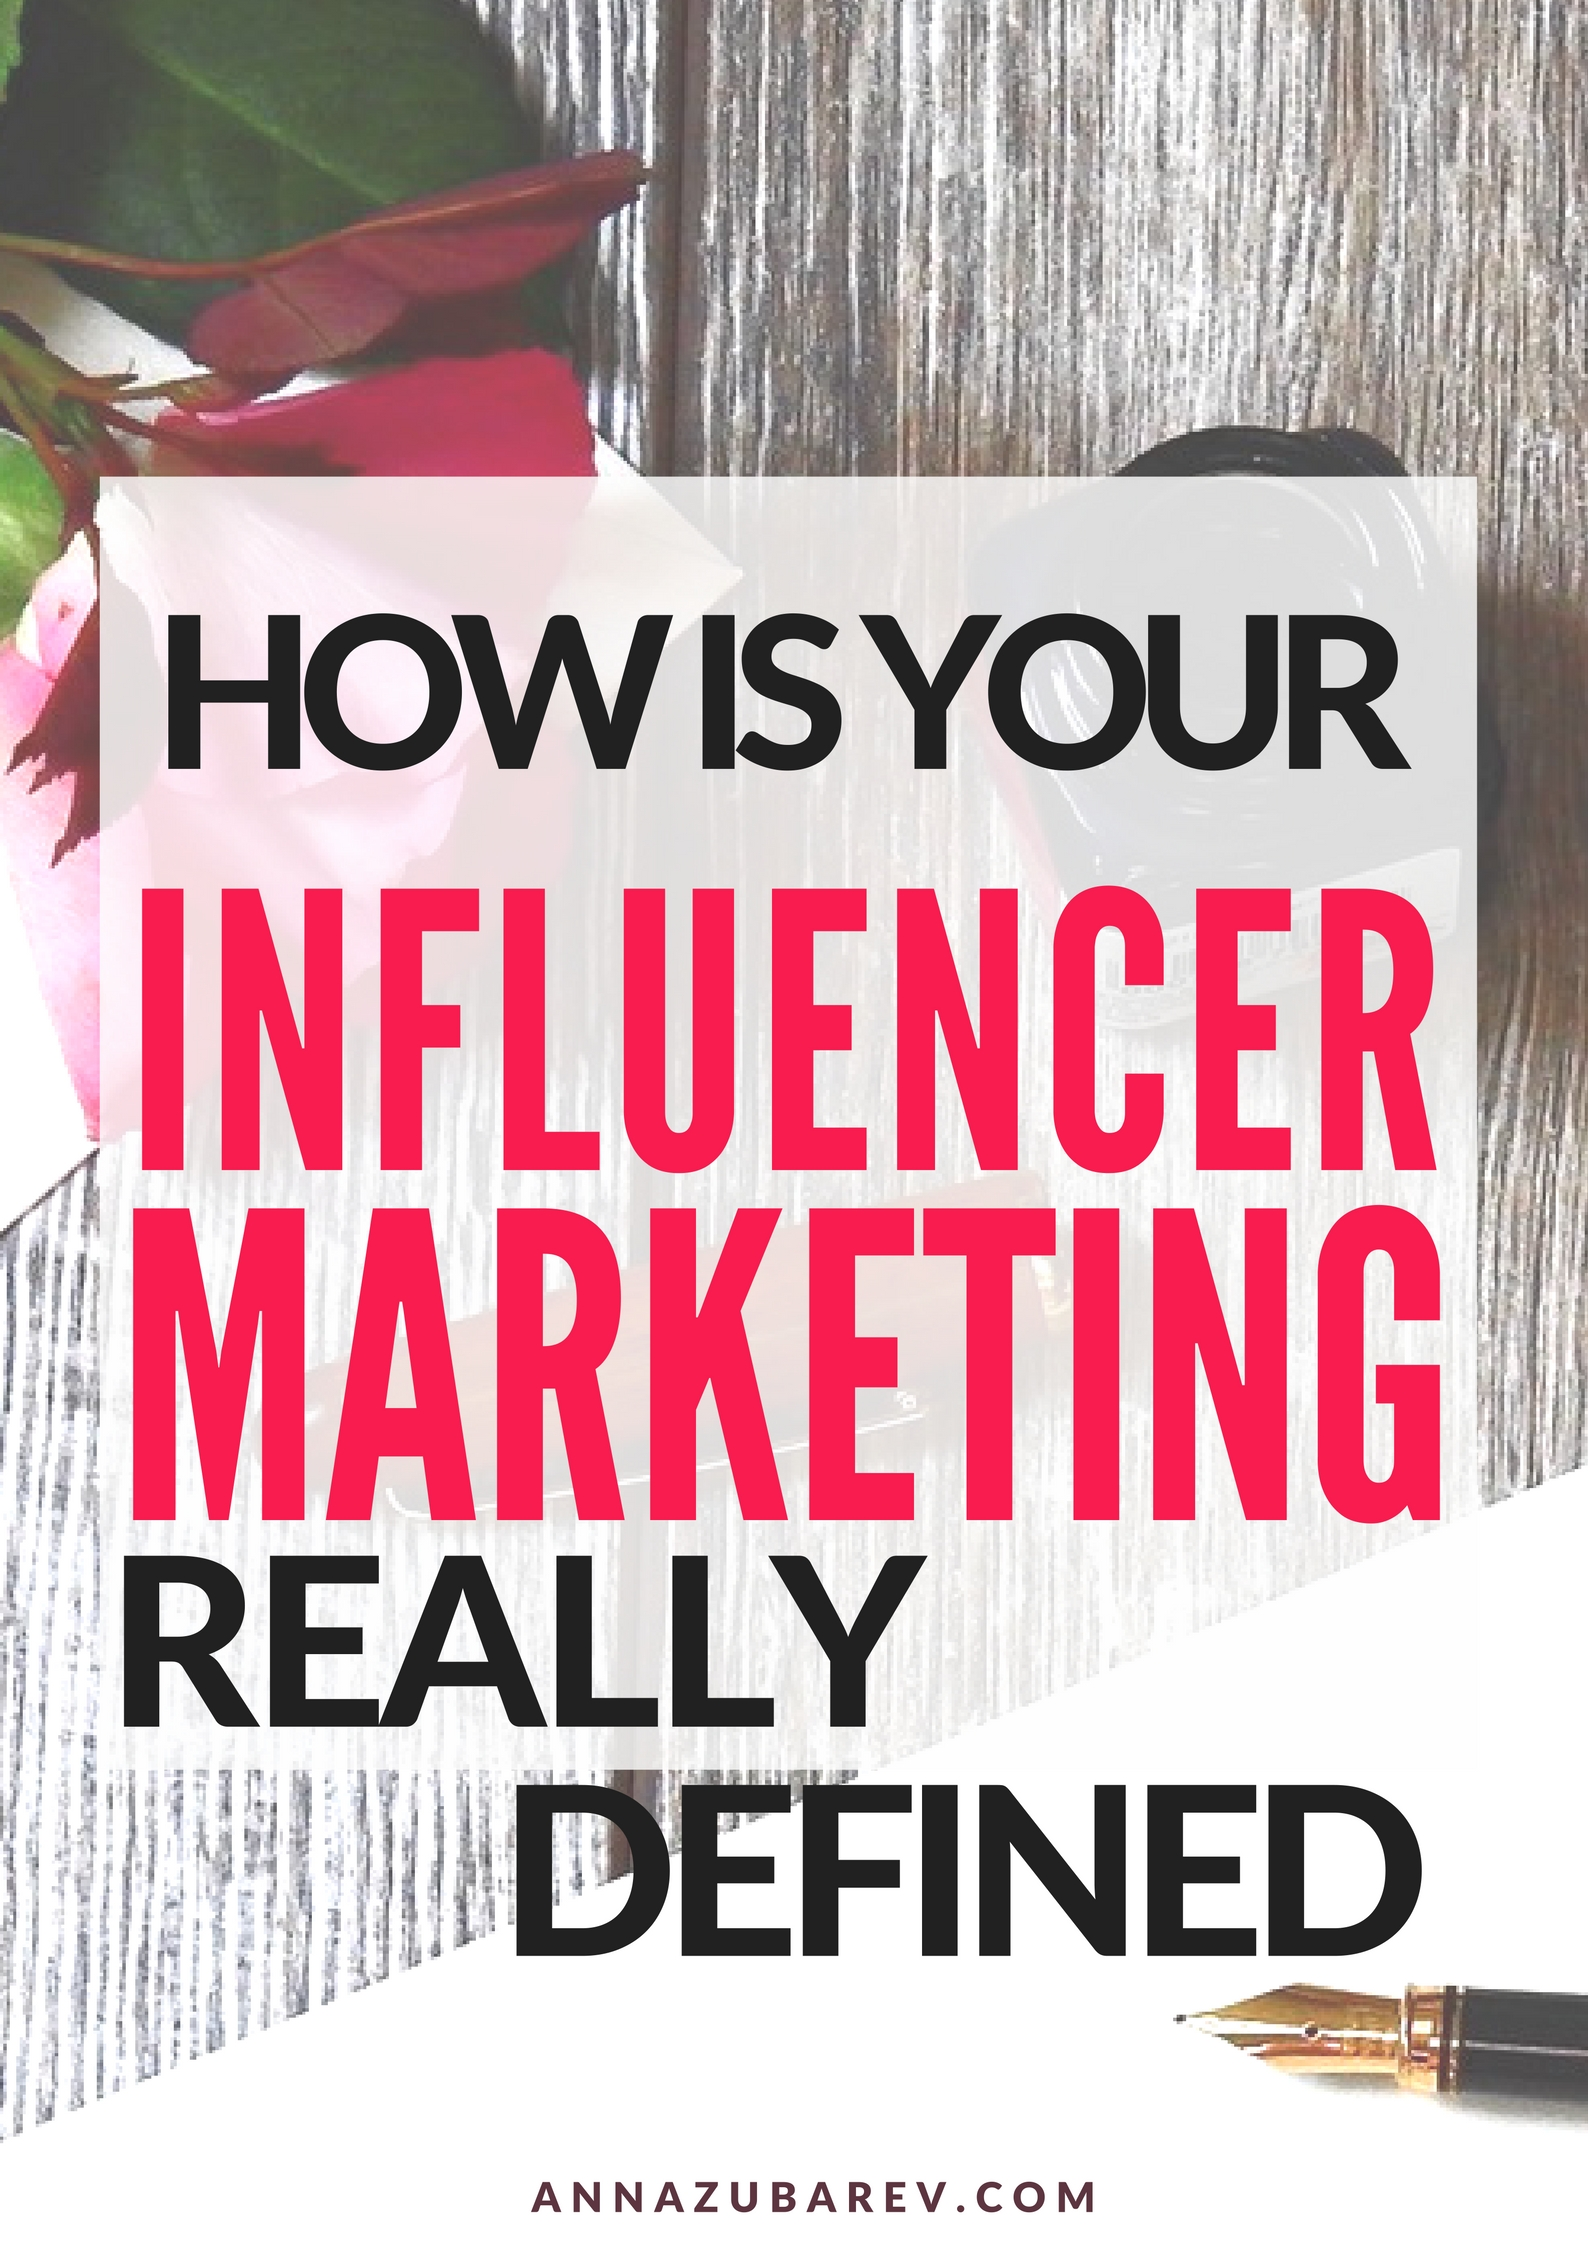 If you are an active social media marketer, you probably have heard of the Klout Score, which defines your score as an Influencer Marketer. In this post, I talk about what you need to know where to see it, how to get it and what it takes to increase your score. via @annazubarev